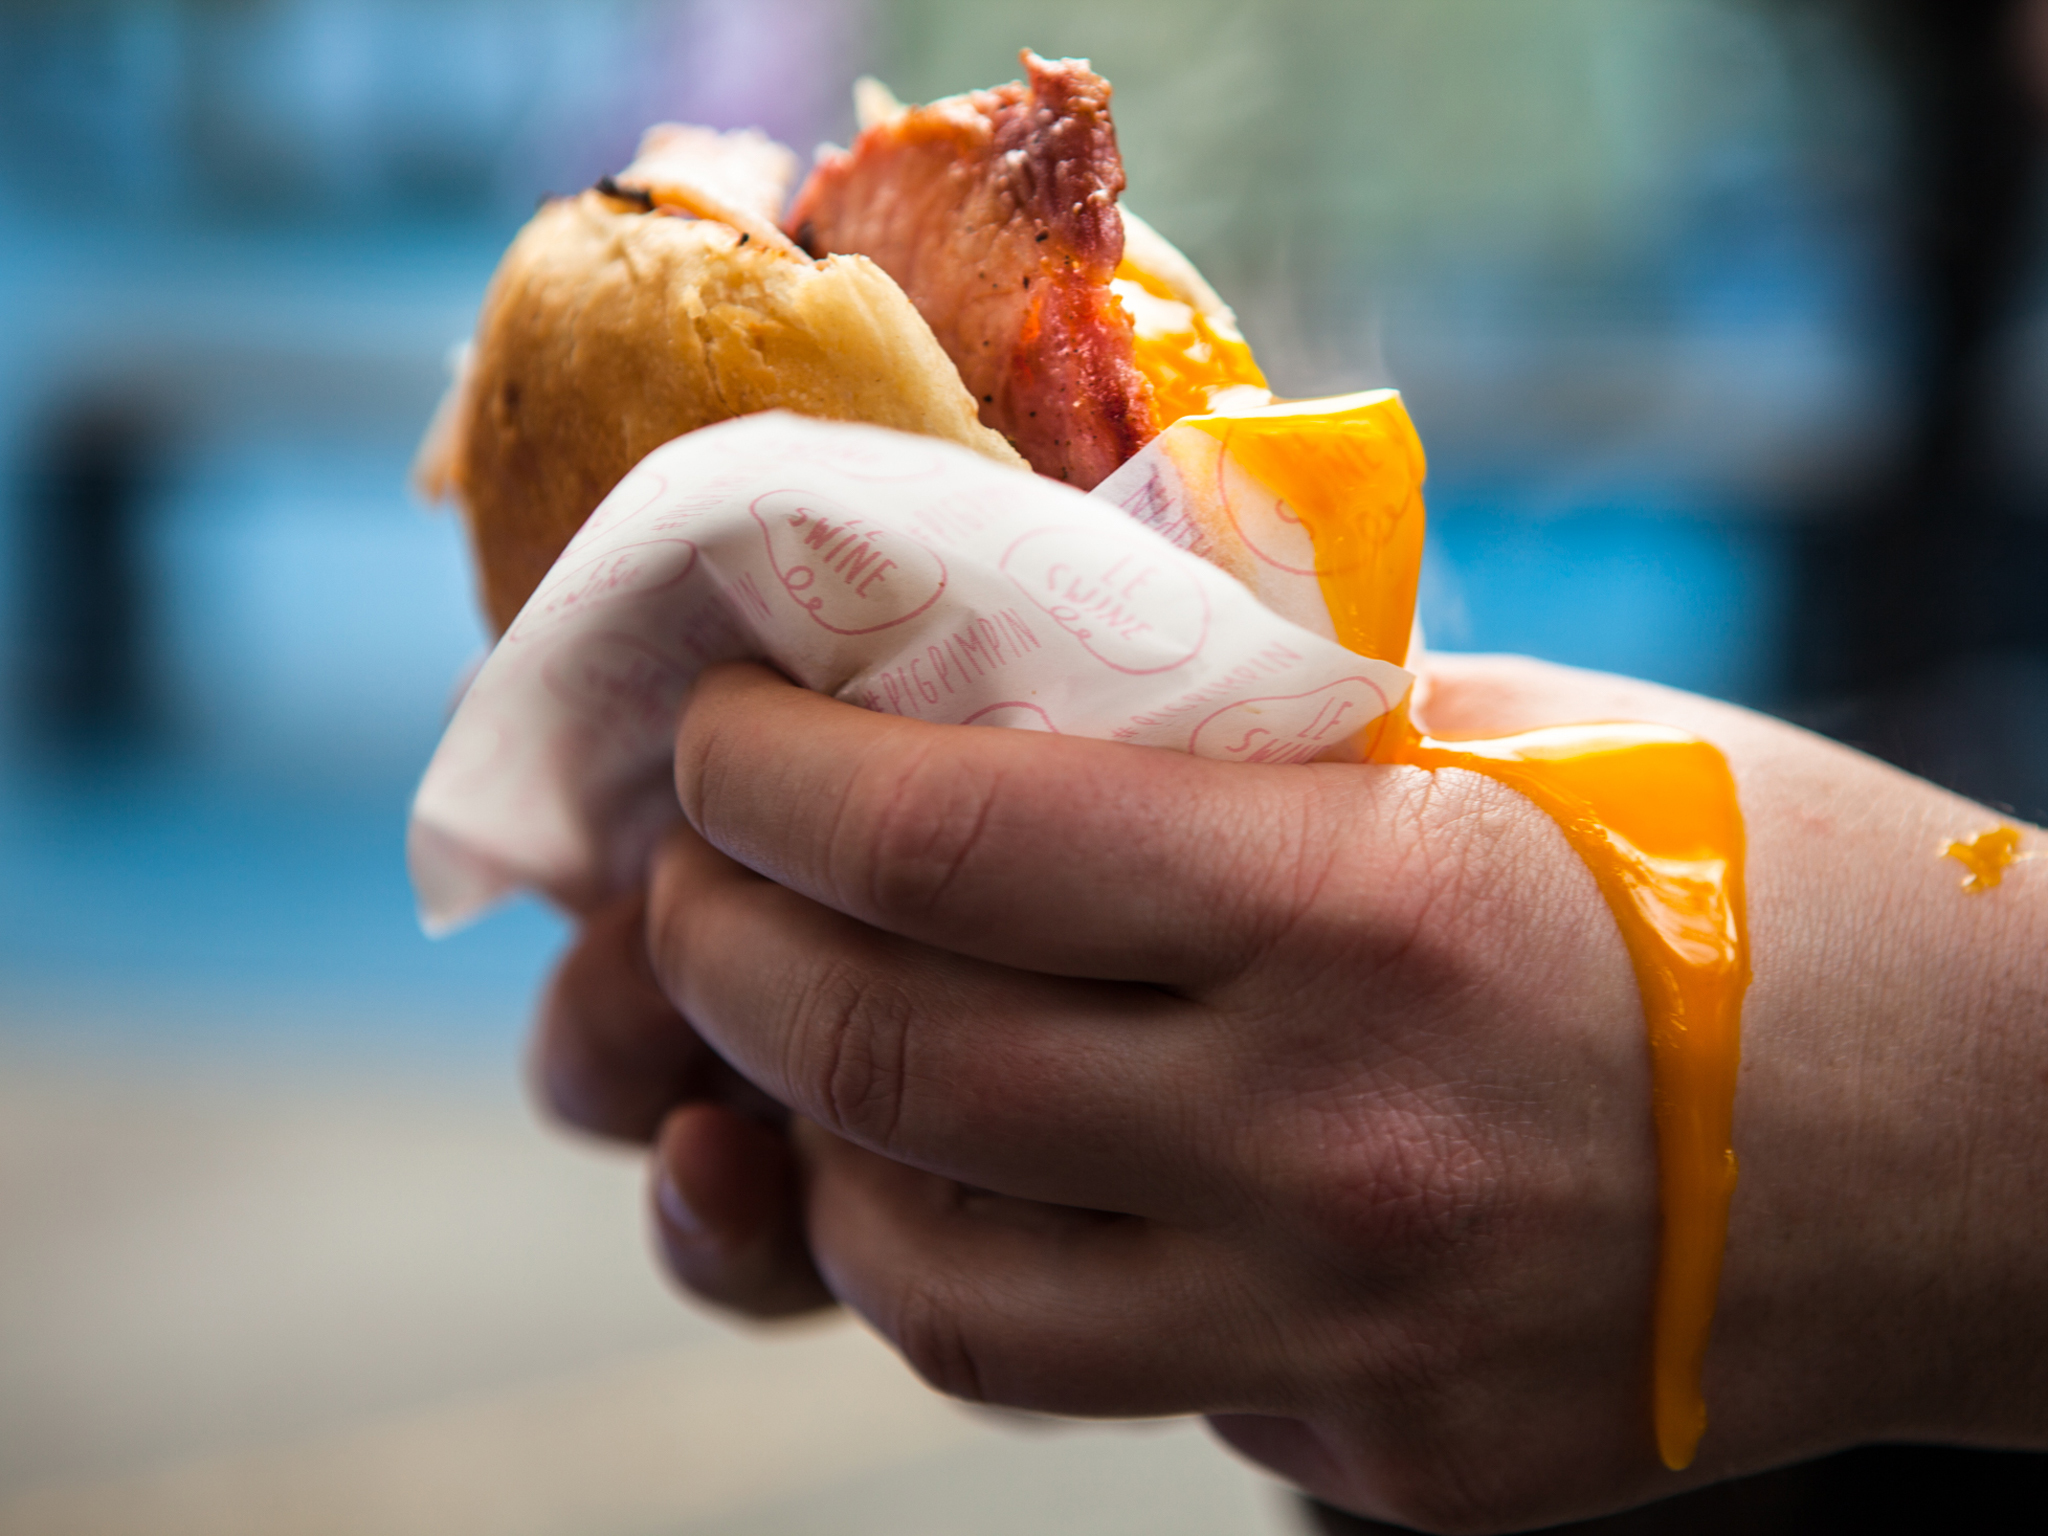 The 50 best street food stalls in London